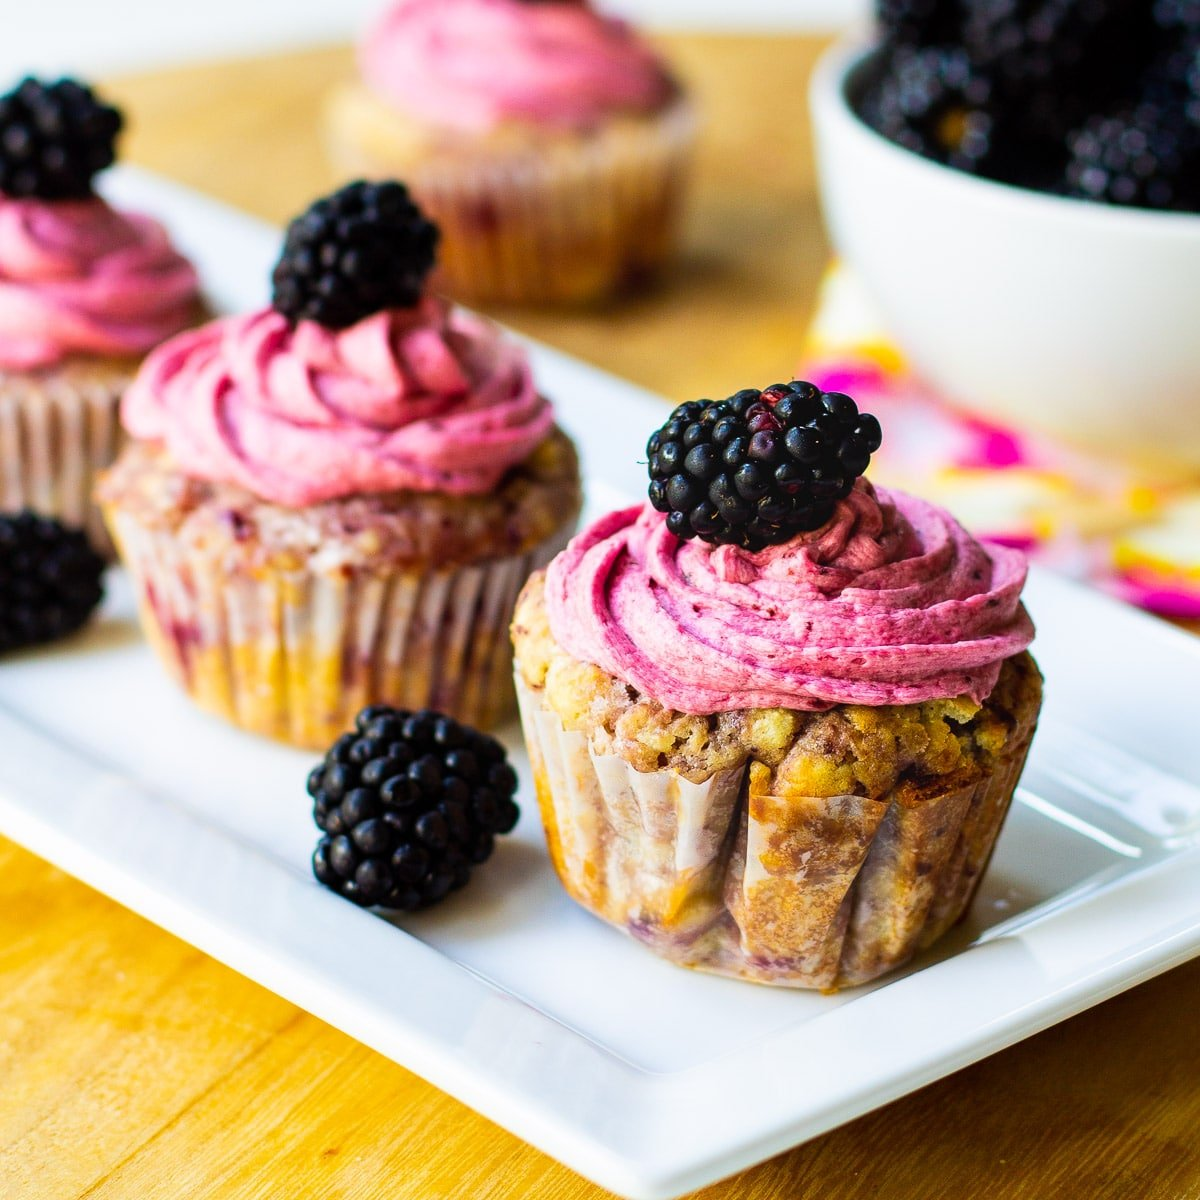 Cupcakes with Blackberries on a rectangular serving platter.